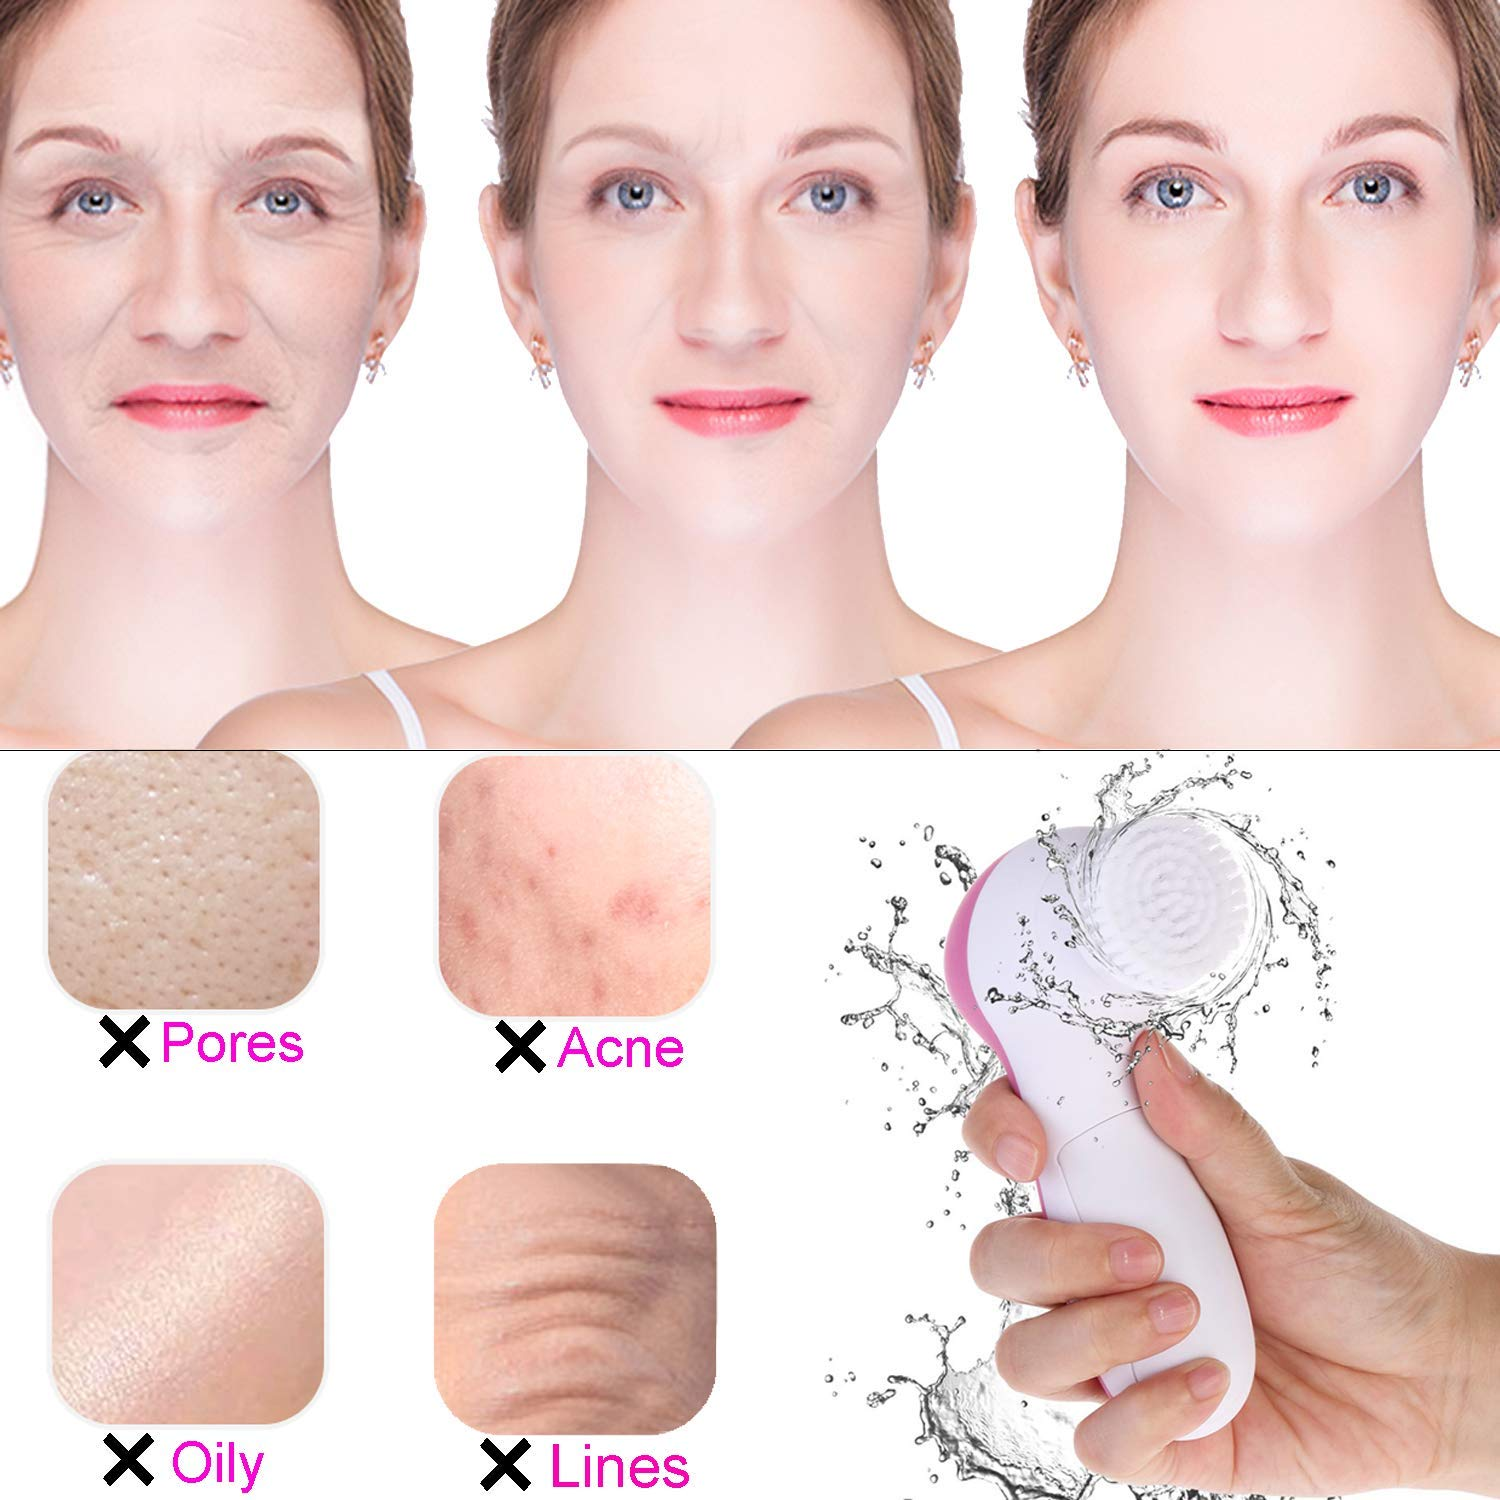 5 in 1 Facial Cleansing Brush, Face Wash Facial Soft Cleansing Electric Massager (Pink)